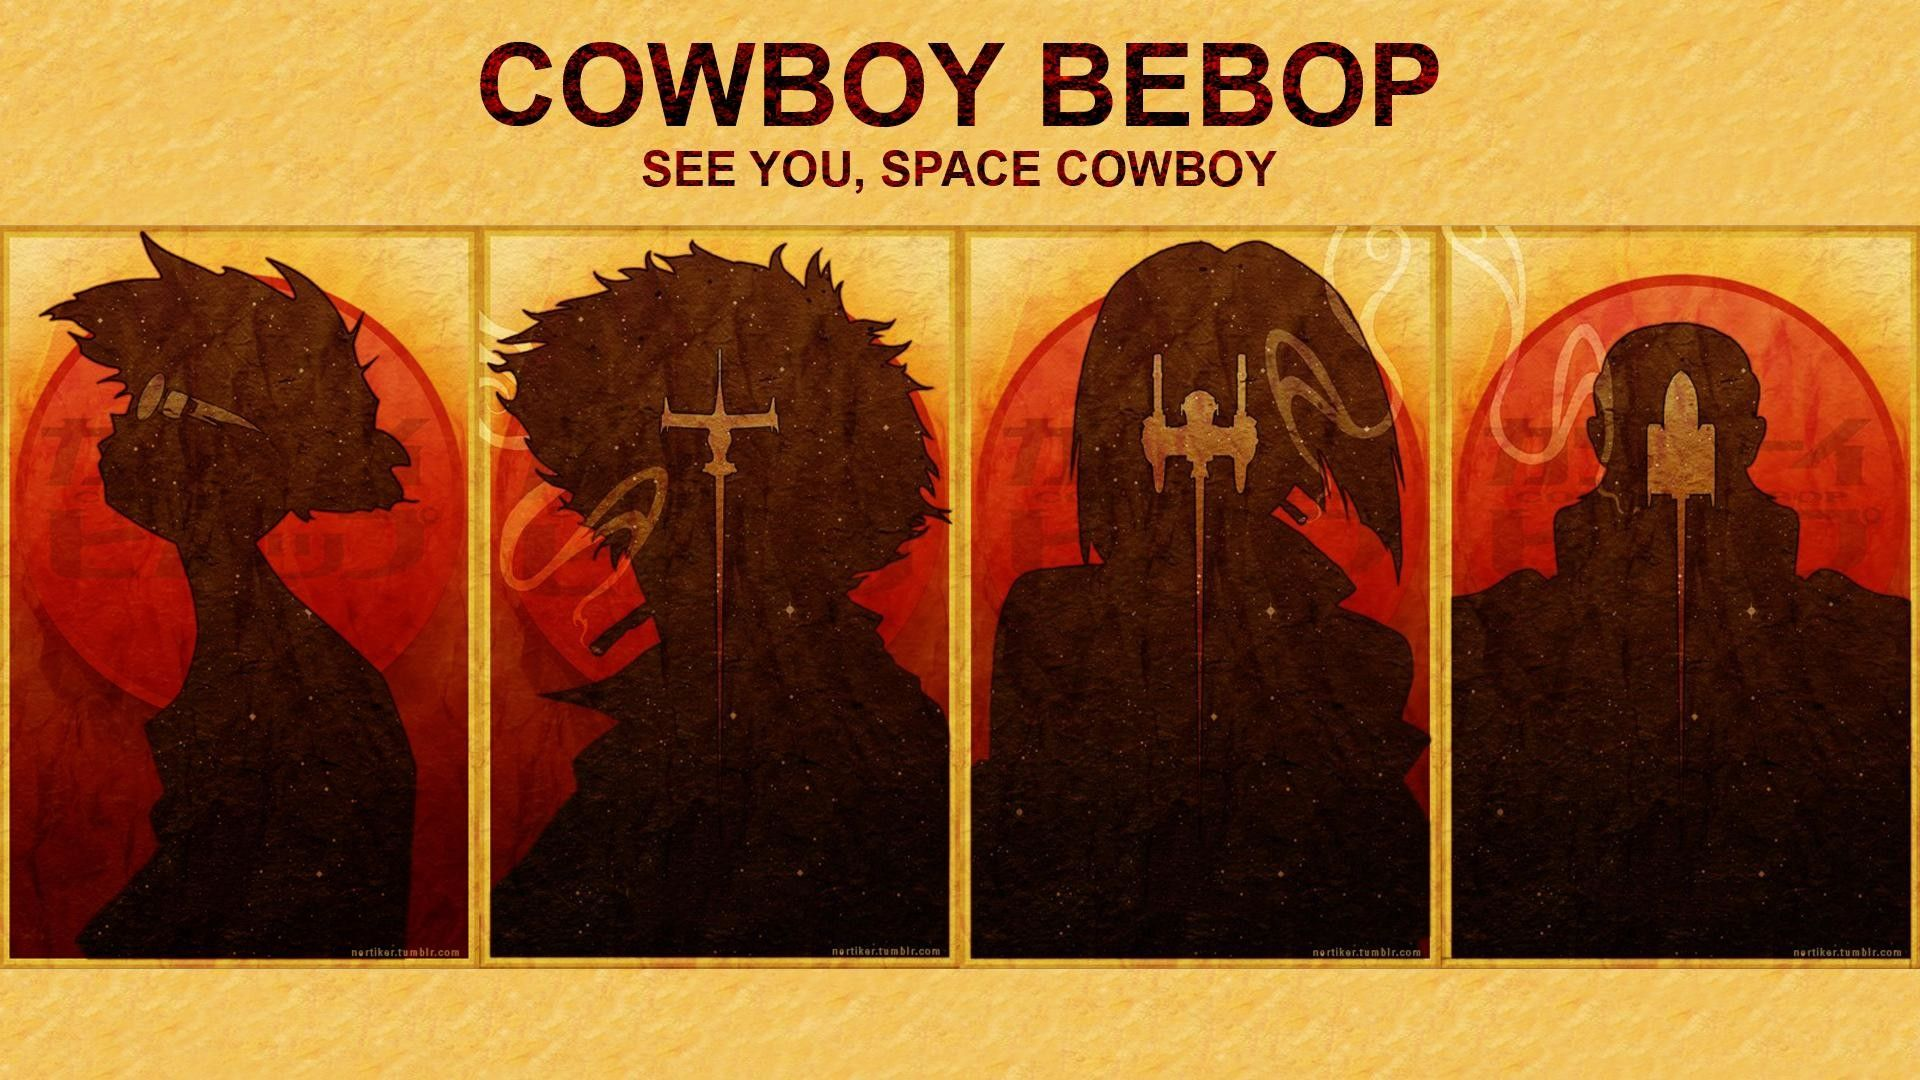 1920x1080 Wallpapers Cowboy Bebop Cowboy Bebop Cowboy Bebop Anime Cowboy Bebop Wallpapers